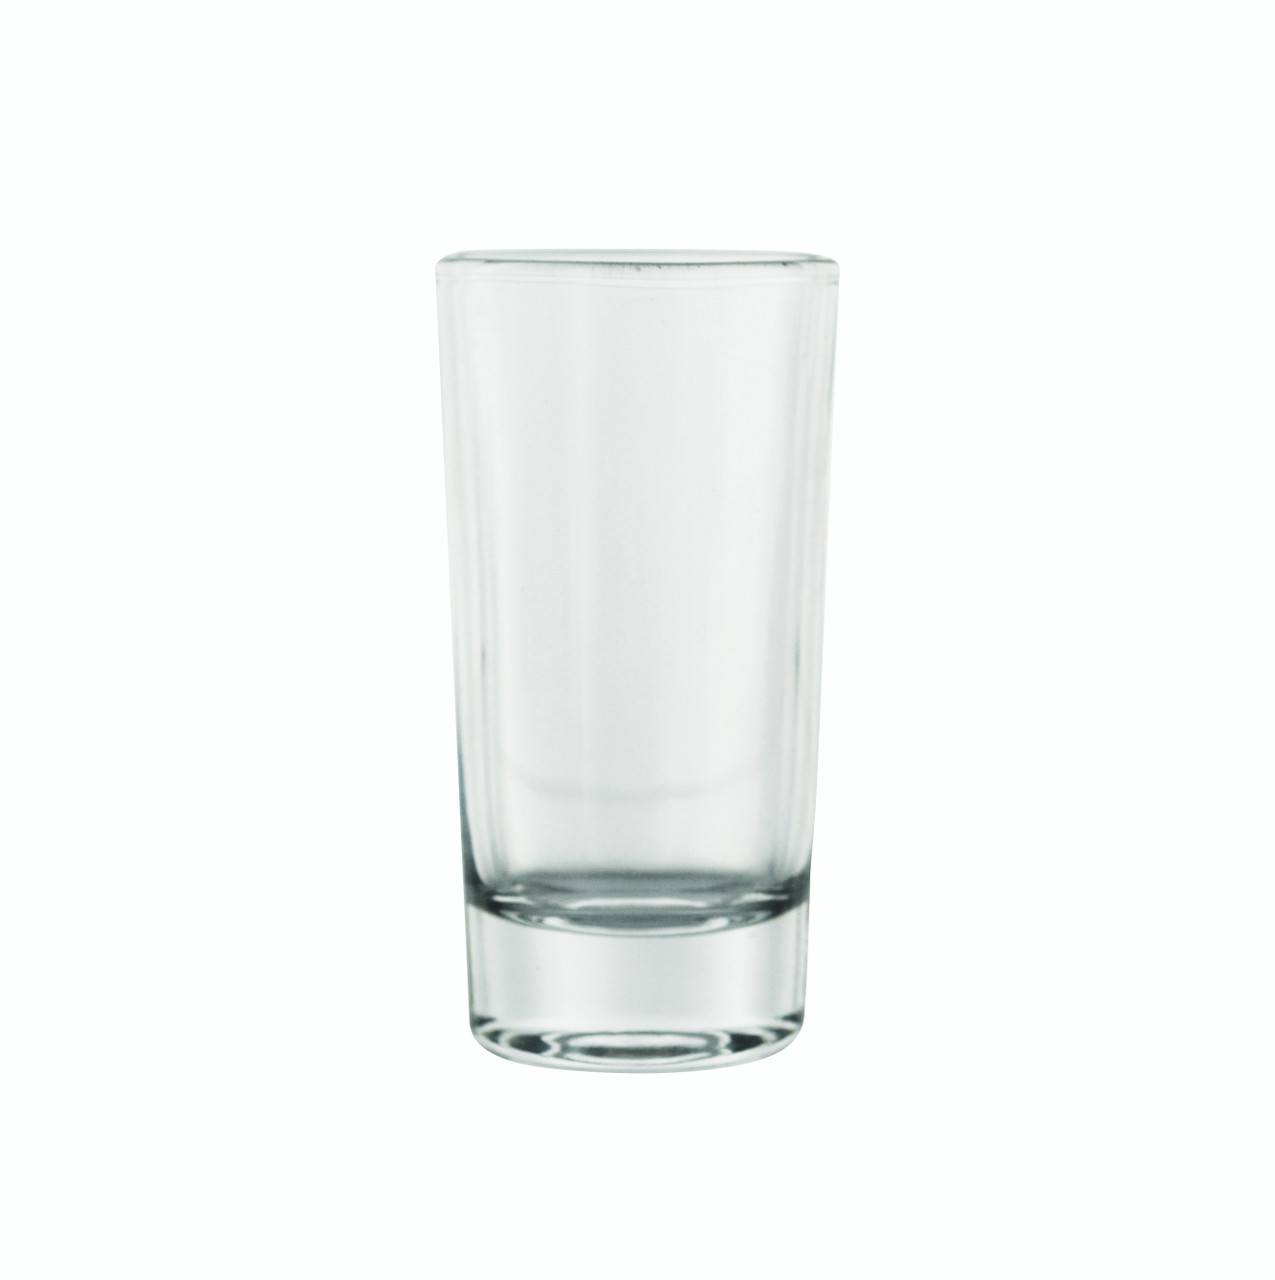 Cylo 1 Shooter Glass -2oz Dia:1.5in H:2.9in